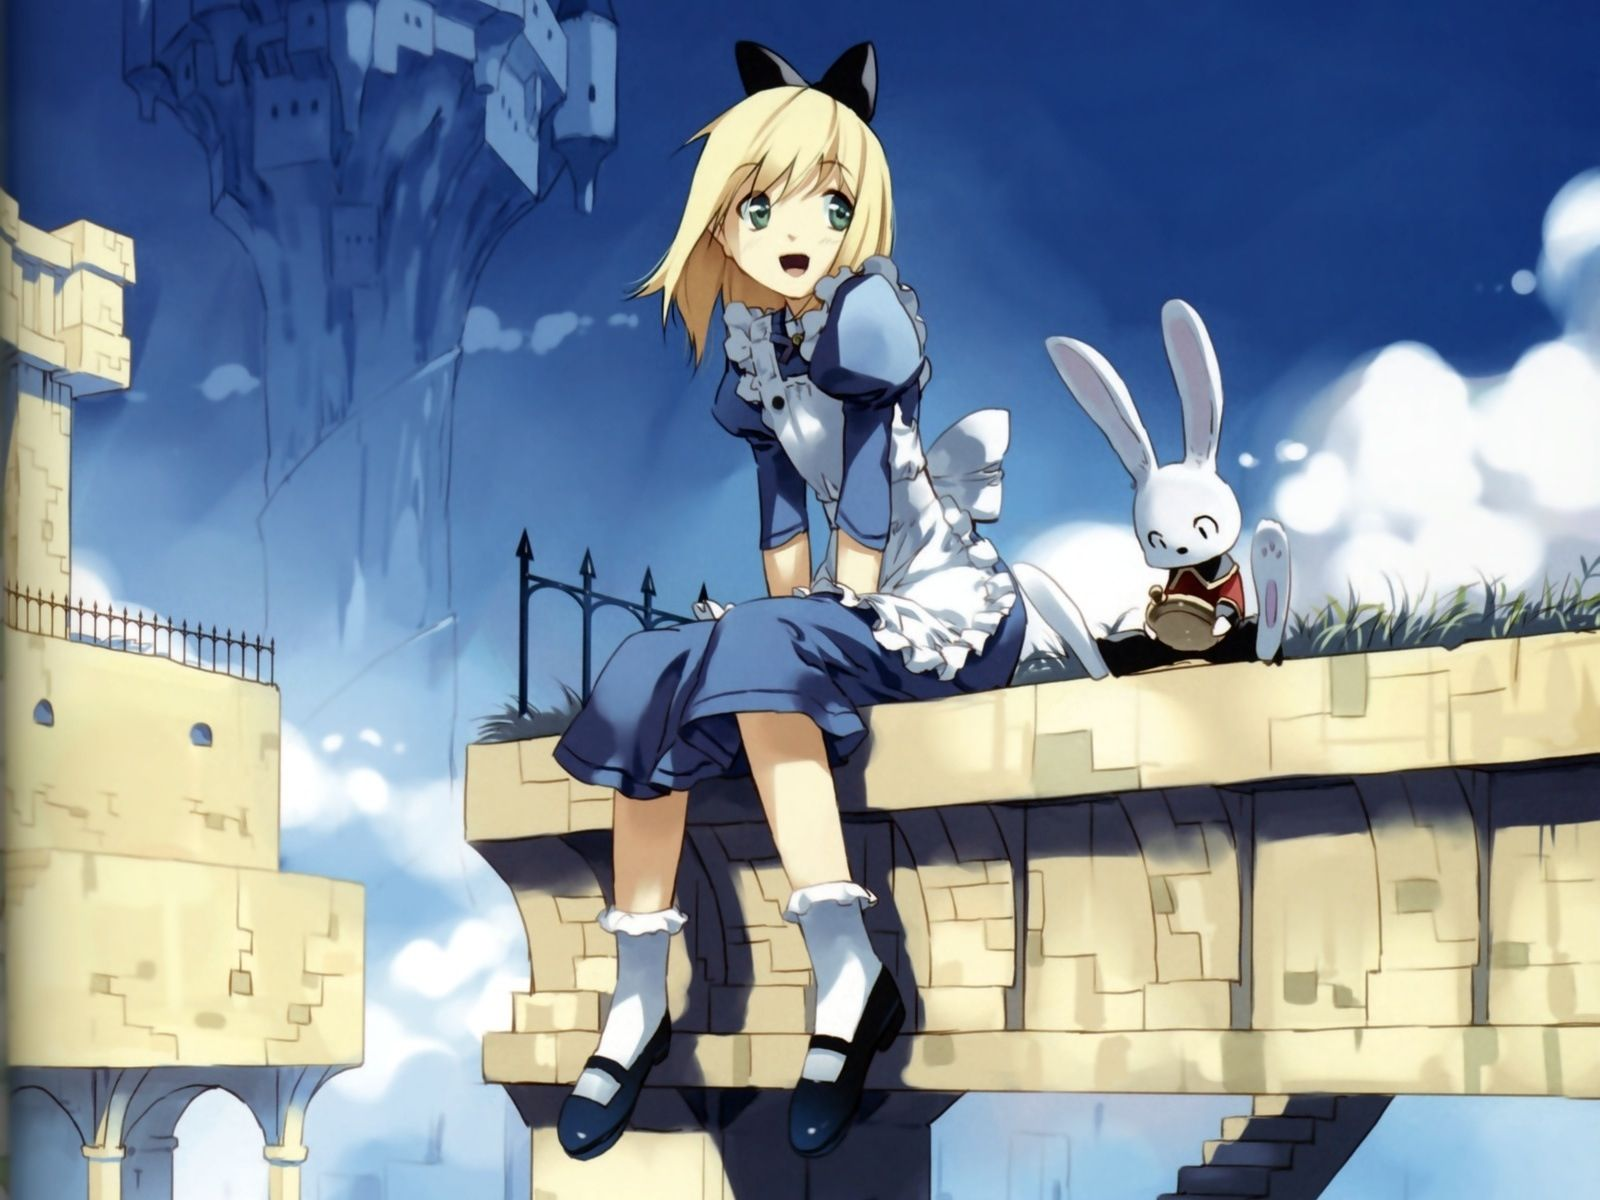 Alice in wonderland anime (With images) Alice in